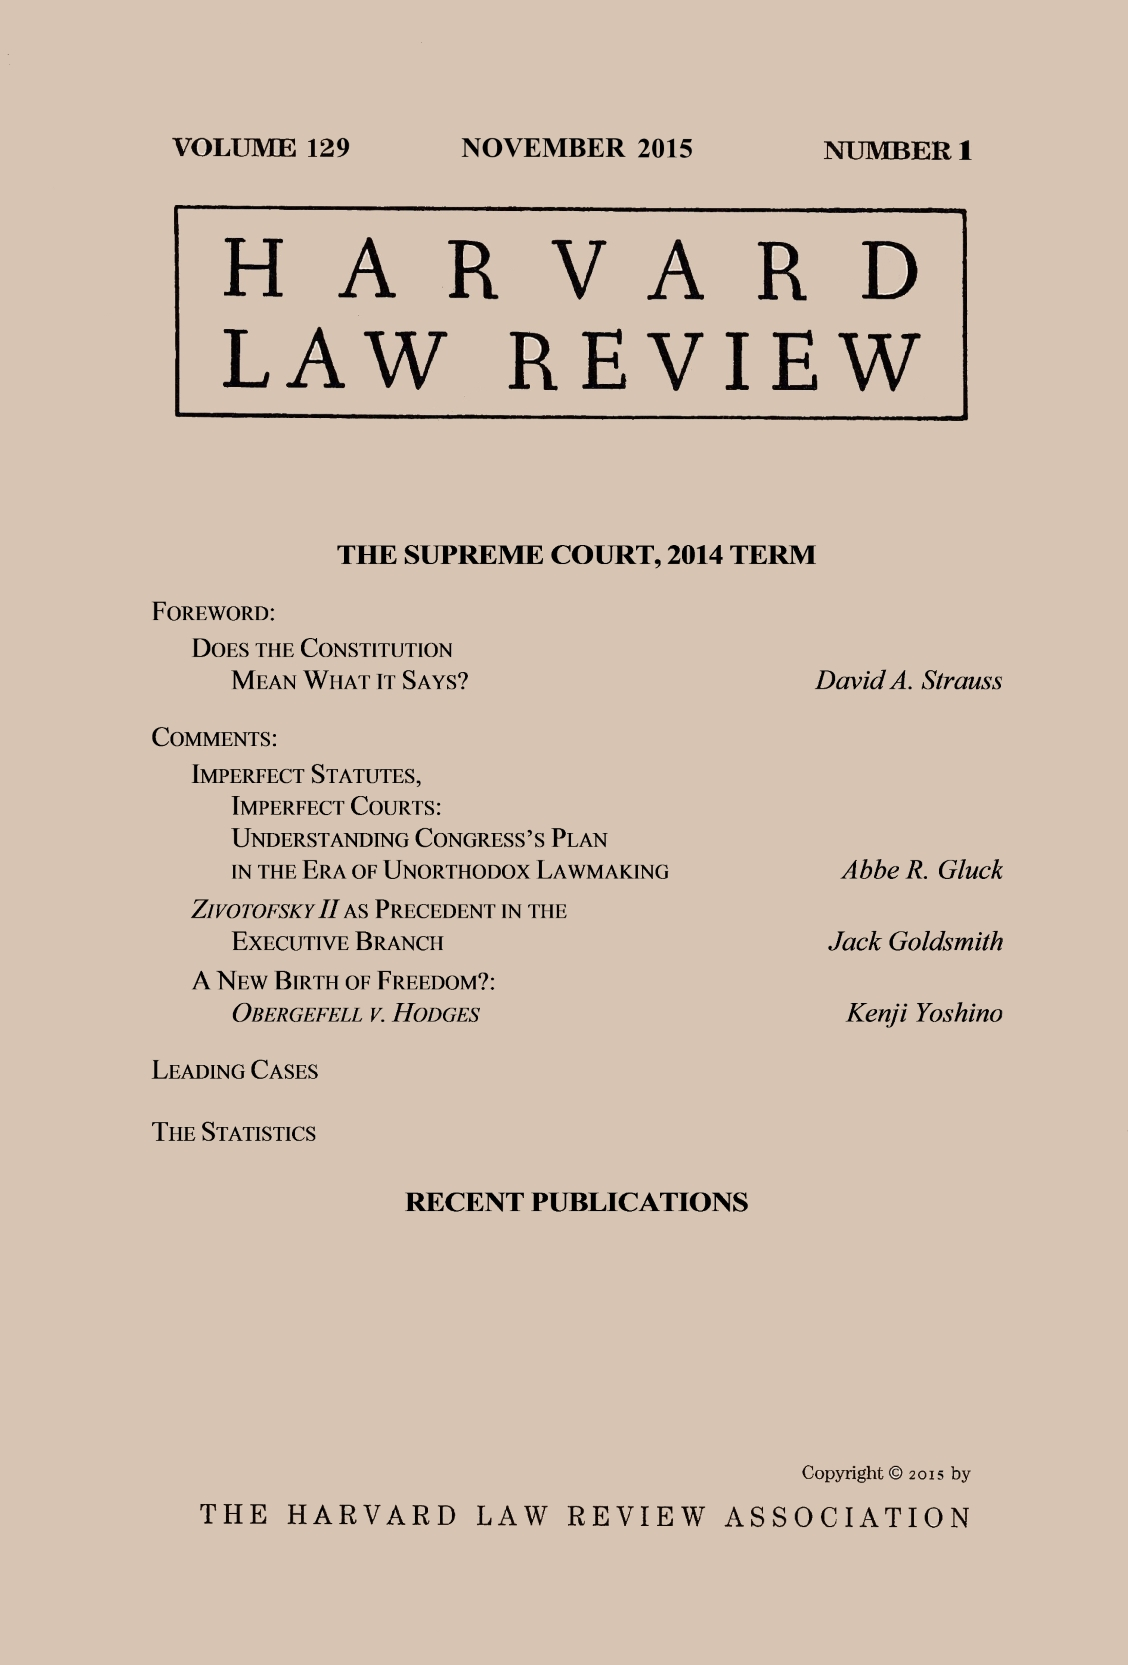 harvard law review 1 for 2015 2016 the supreme court 2014 term harvard law review 1 for 2015 2016 the supreme court 2014 term has case summaries essays by strauss gluck goldsmith and yoshino